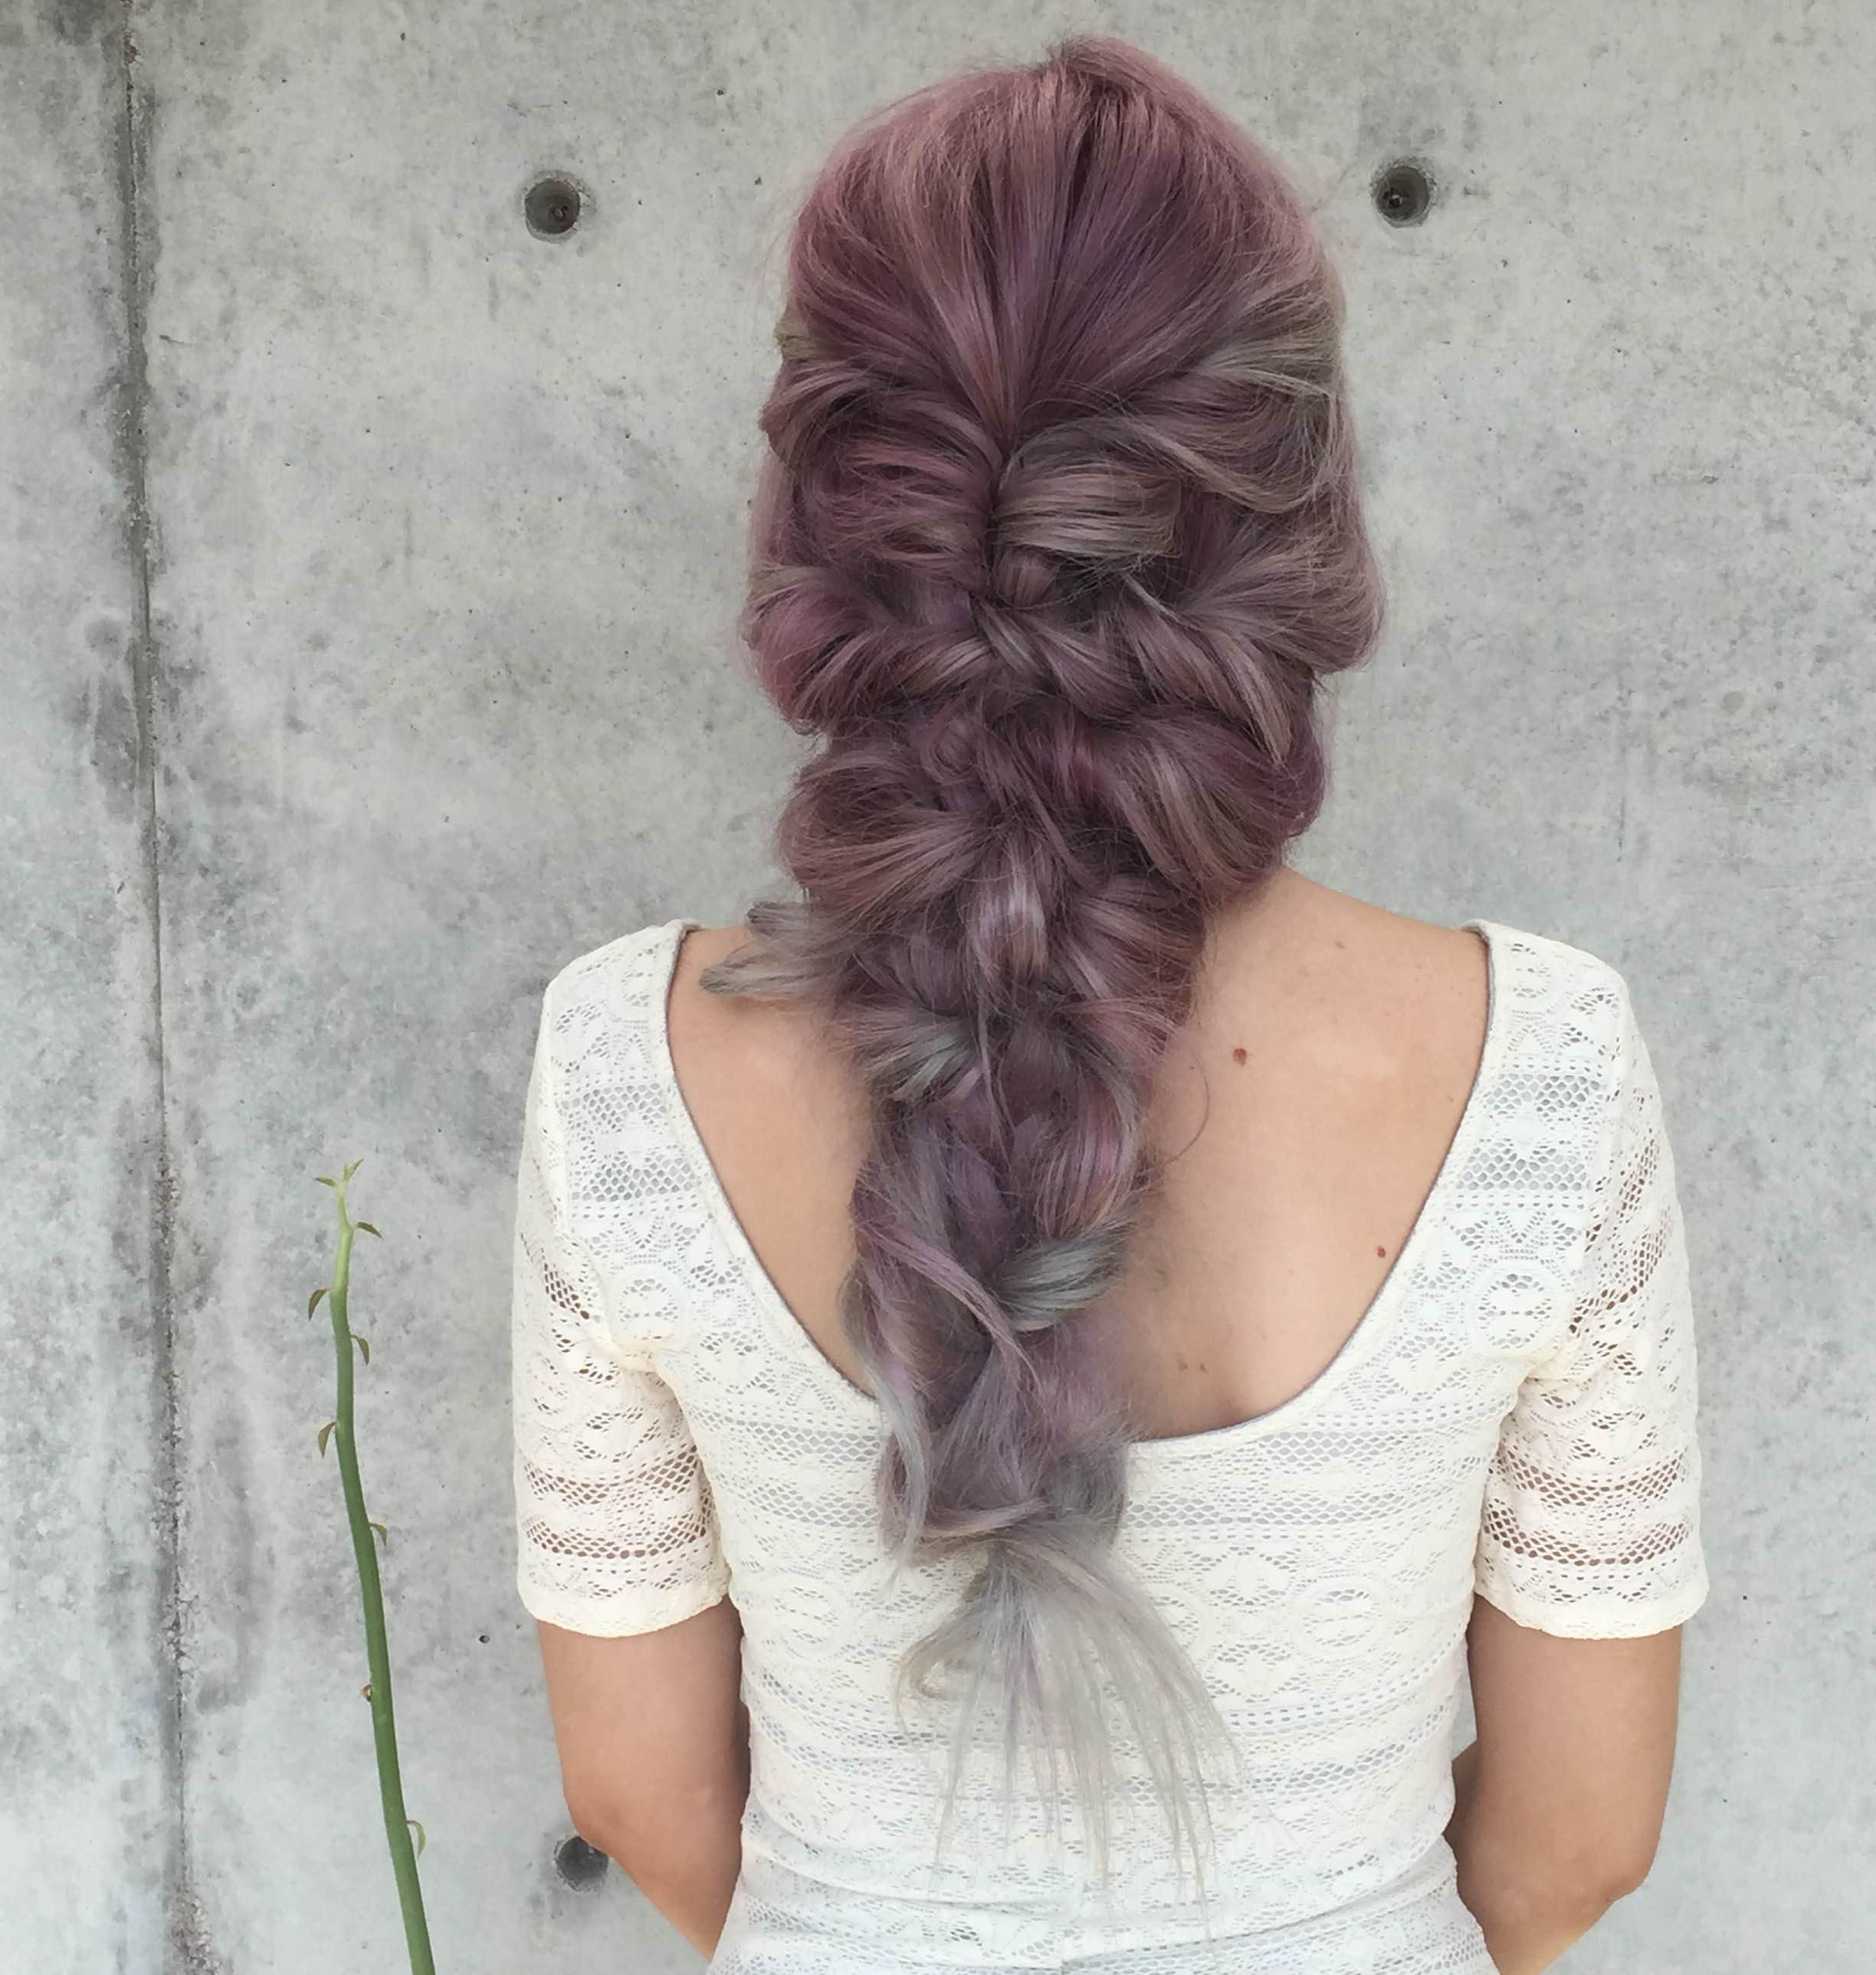 This Curly Mermaid Hairstyle By Theconfessionsofahairstylist Featuring Our New Kenra Fast Lockige Frisuren Frisur Dicke Haare Schone Zopfe Fur Lange Haare